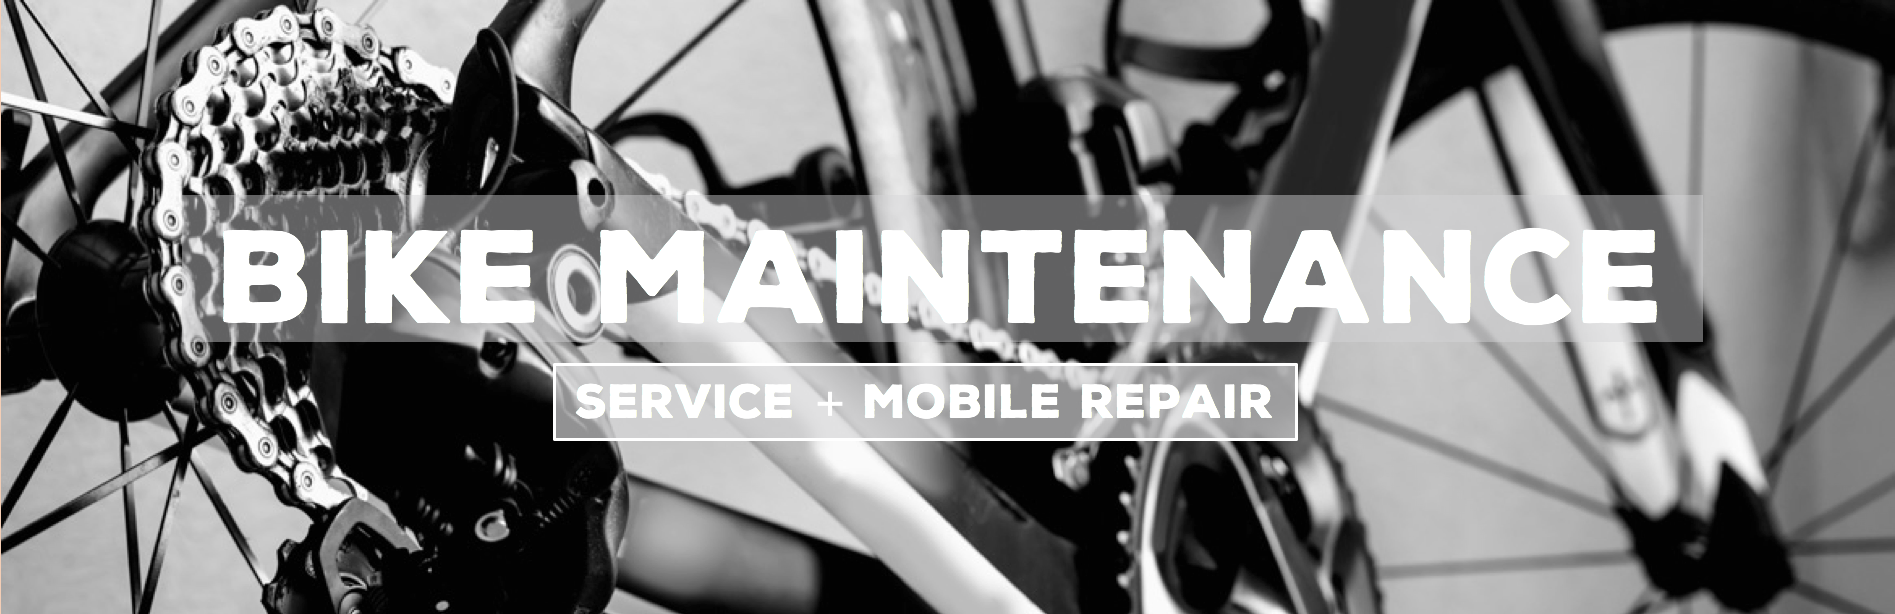 Bike Maintenance - Bike Service - Bike Mobile Repair San Diego